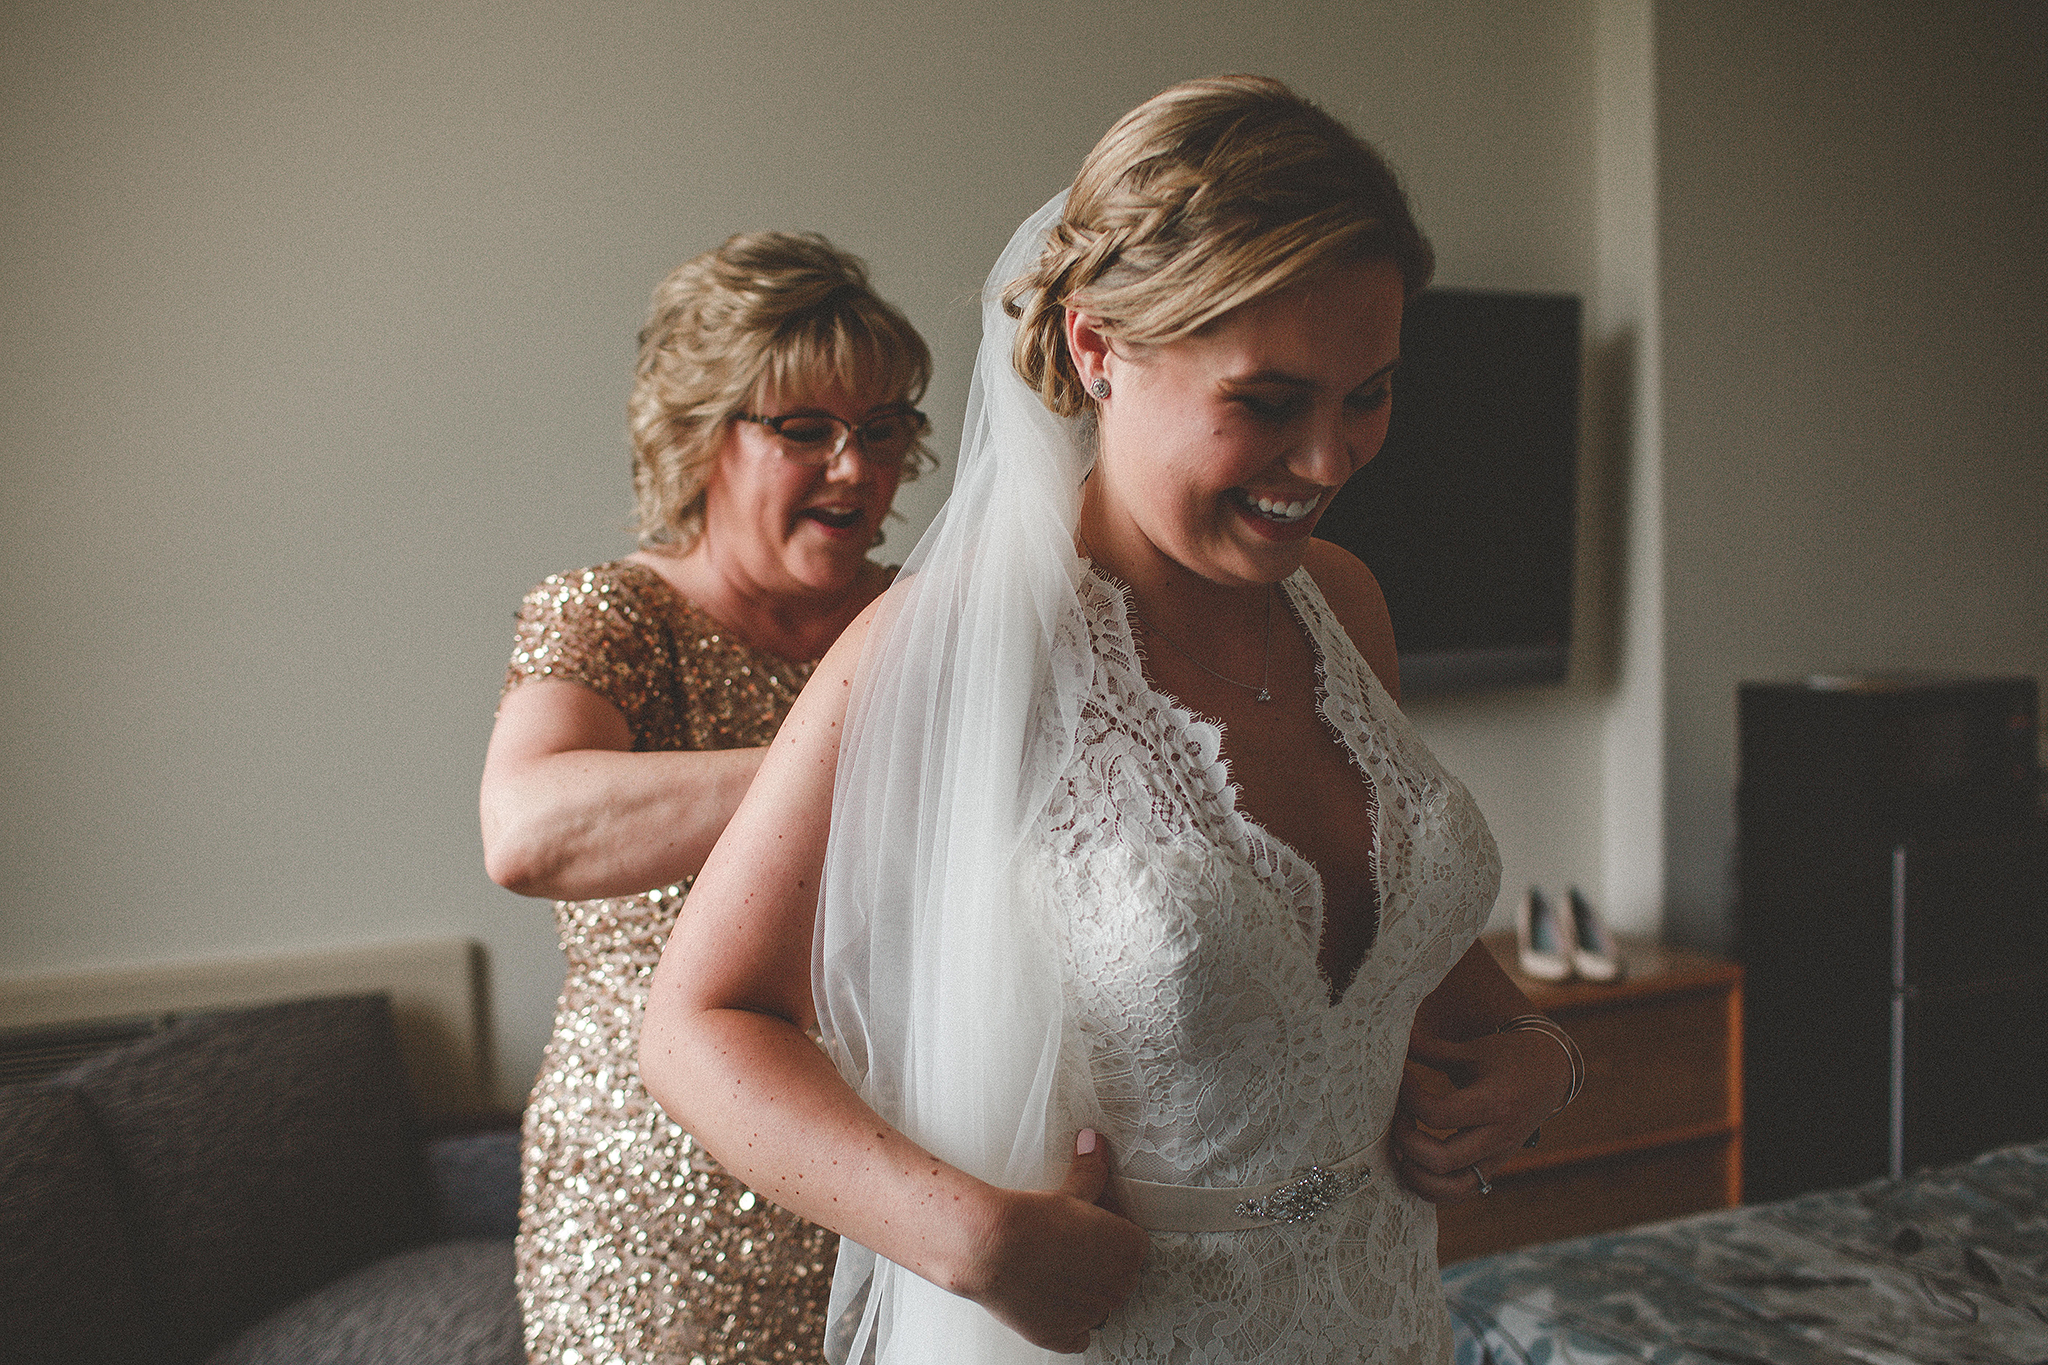 bride getting into wedding dress with mom zipping | dekalb, IL wedding photographer